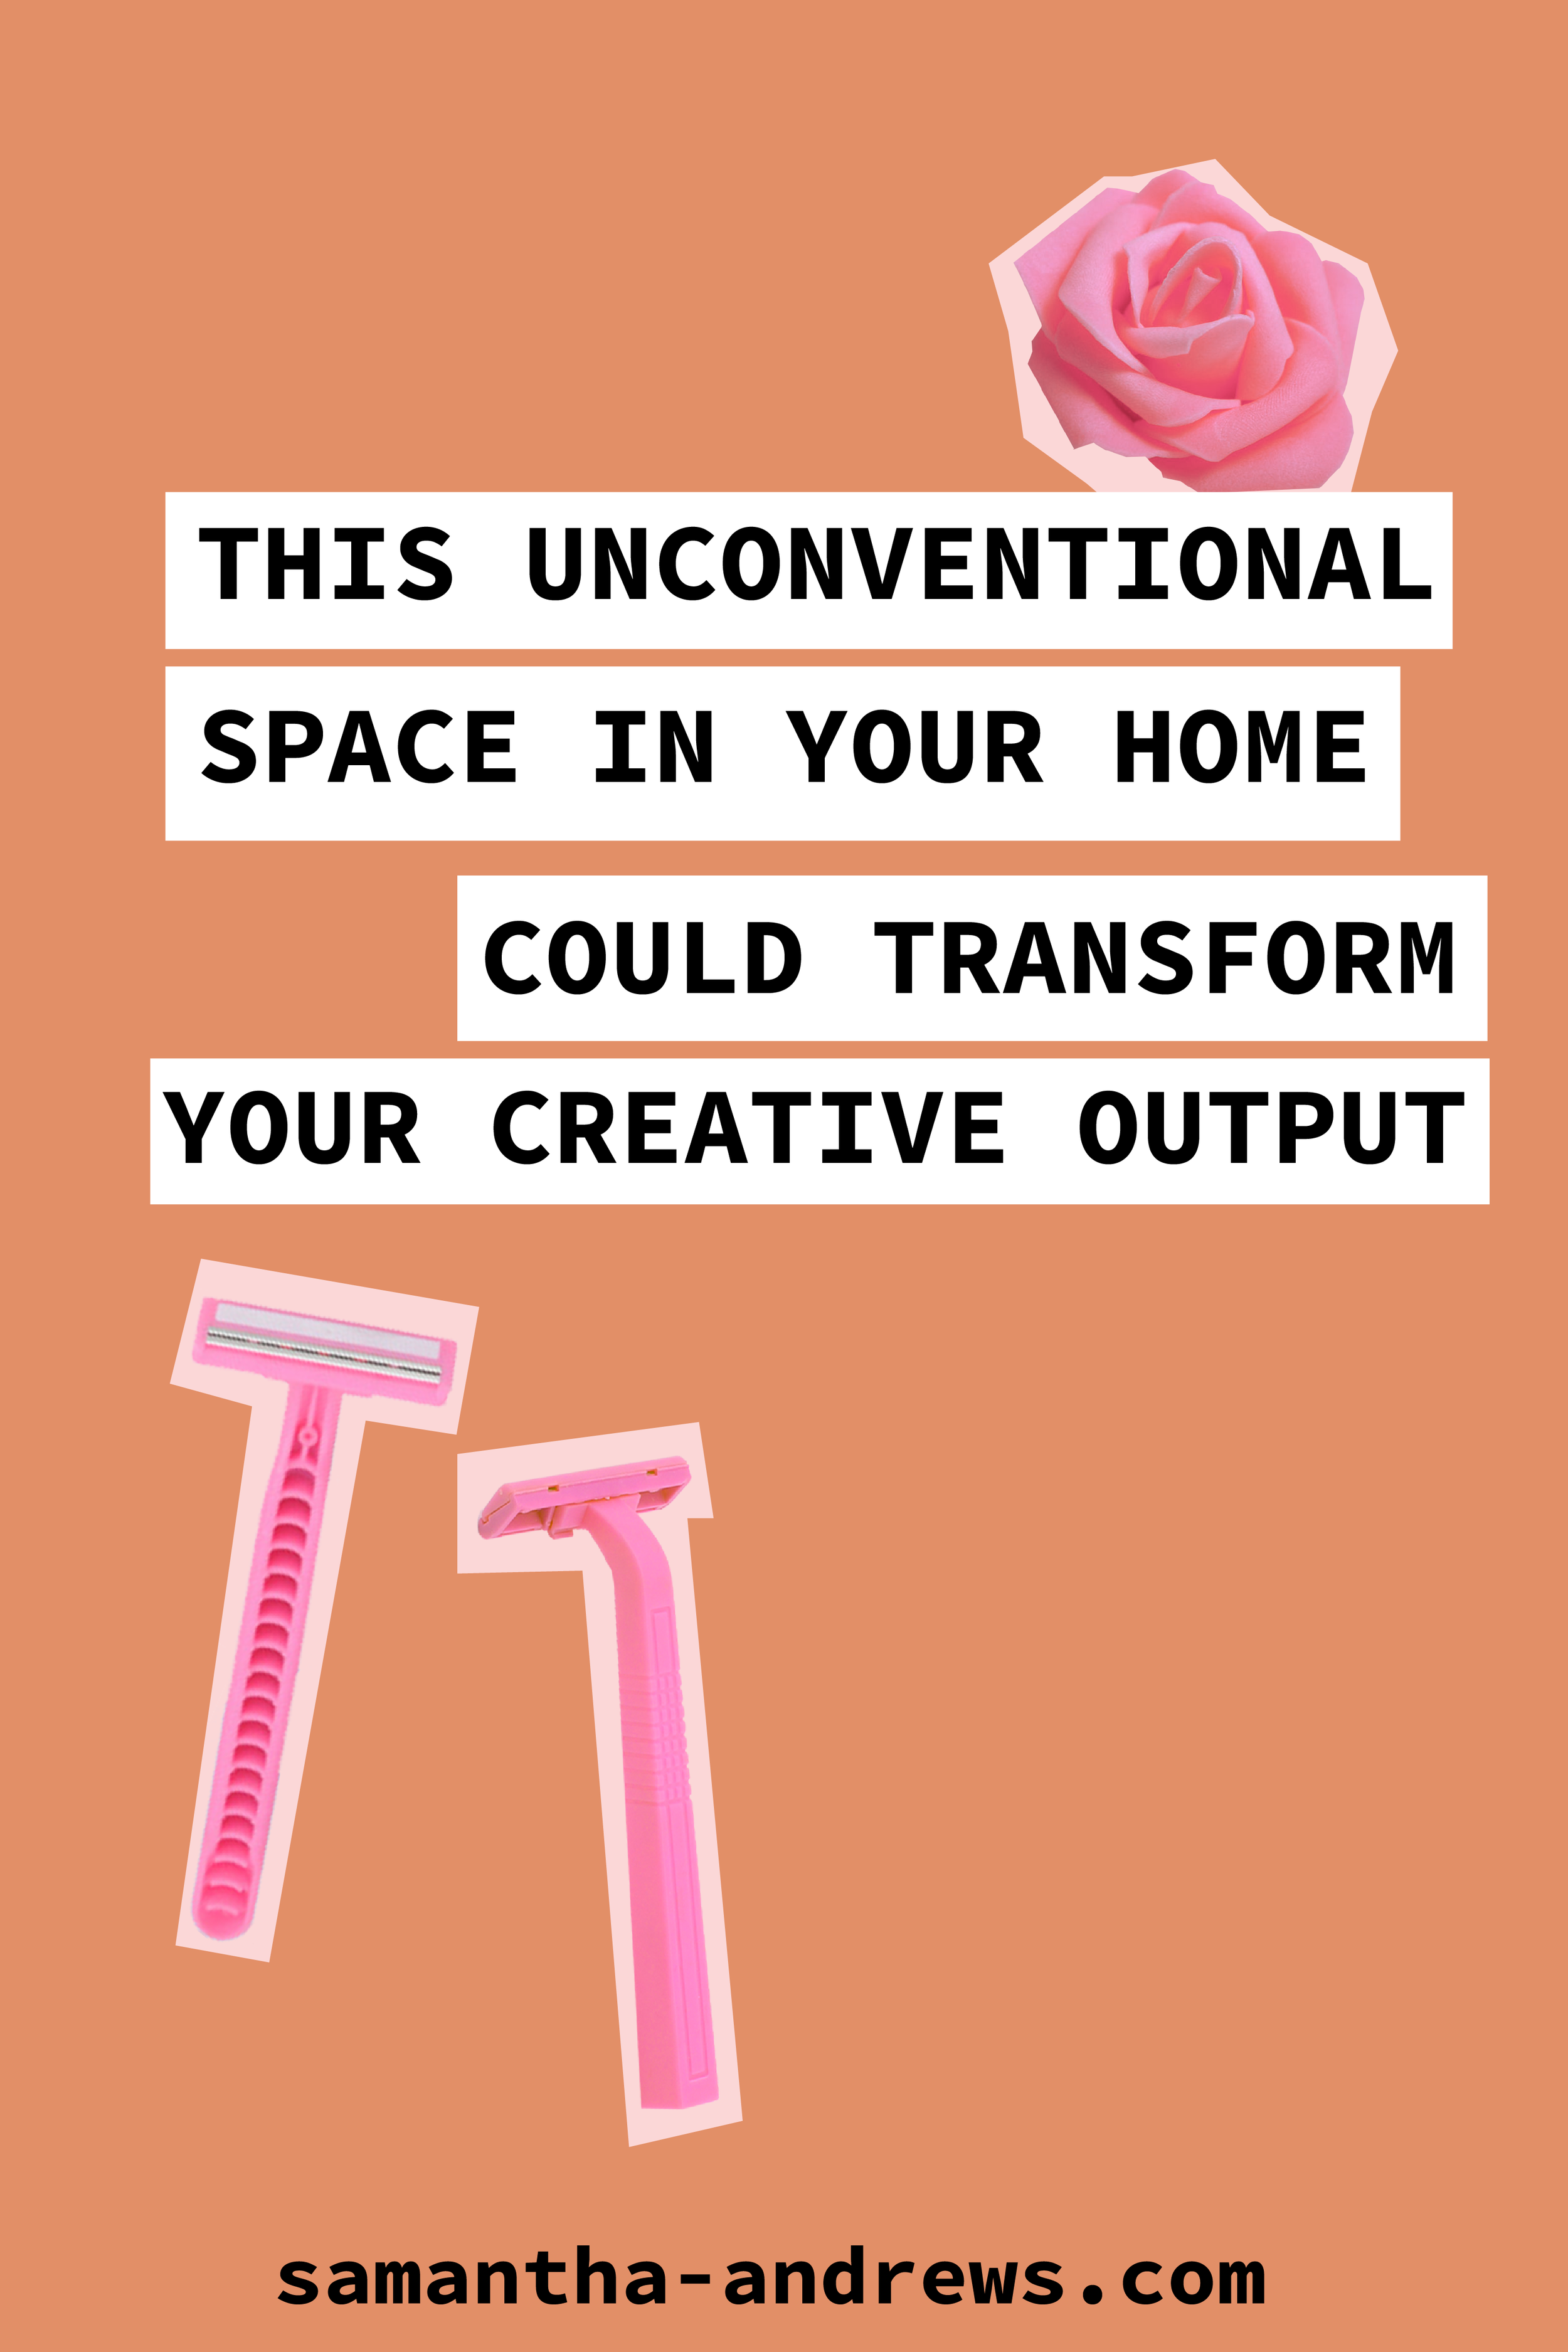 This Unconventional Space In Your Home Could Transform Your Creative Output